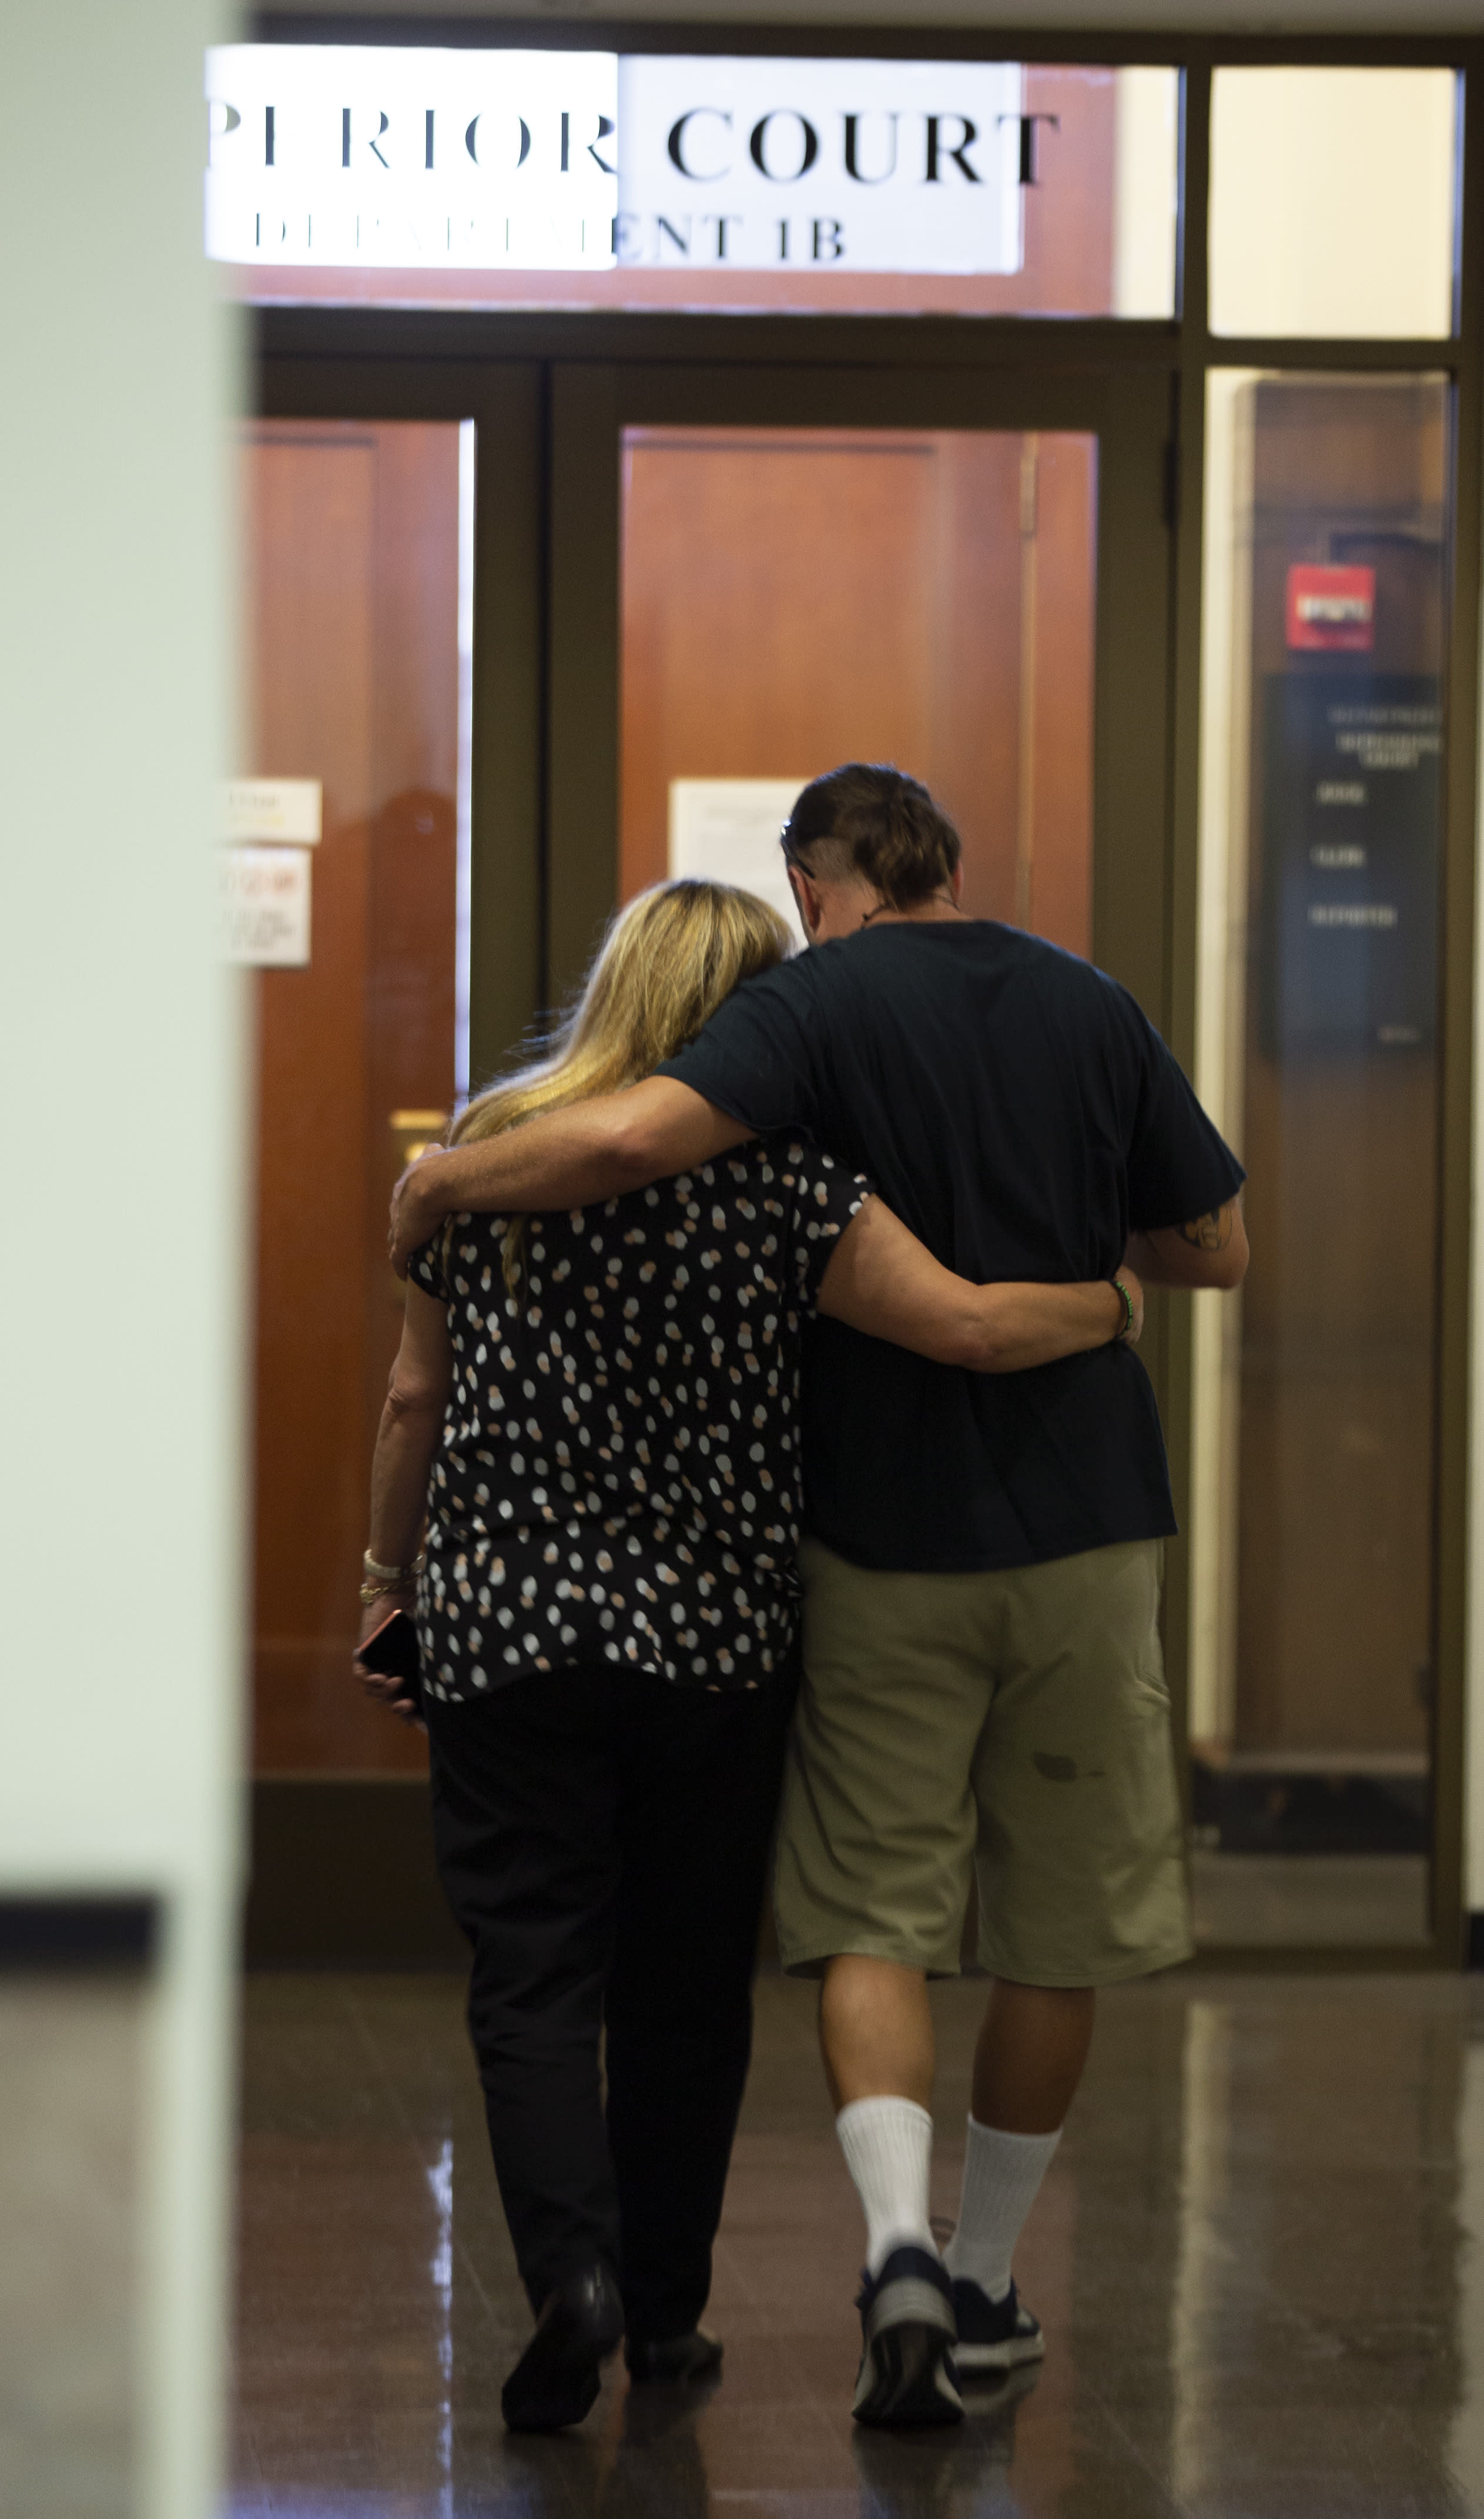 Alberto Vega, right, whose brother Alex Vega was among the 36 victims in the Ghost Ship warehouse fire, leaves the courthouse with an unidentified female companion, Thursday, Sept. 5, 2019 in Oakland, Calif. Jurors found defendant Max Harris not guilty on 36 counts of involuntary manslaughter and were unable to reach a verdict in the case against co-defendant Derick Almena. (AP Photo/D. Ross Cameron)